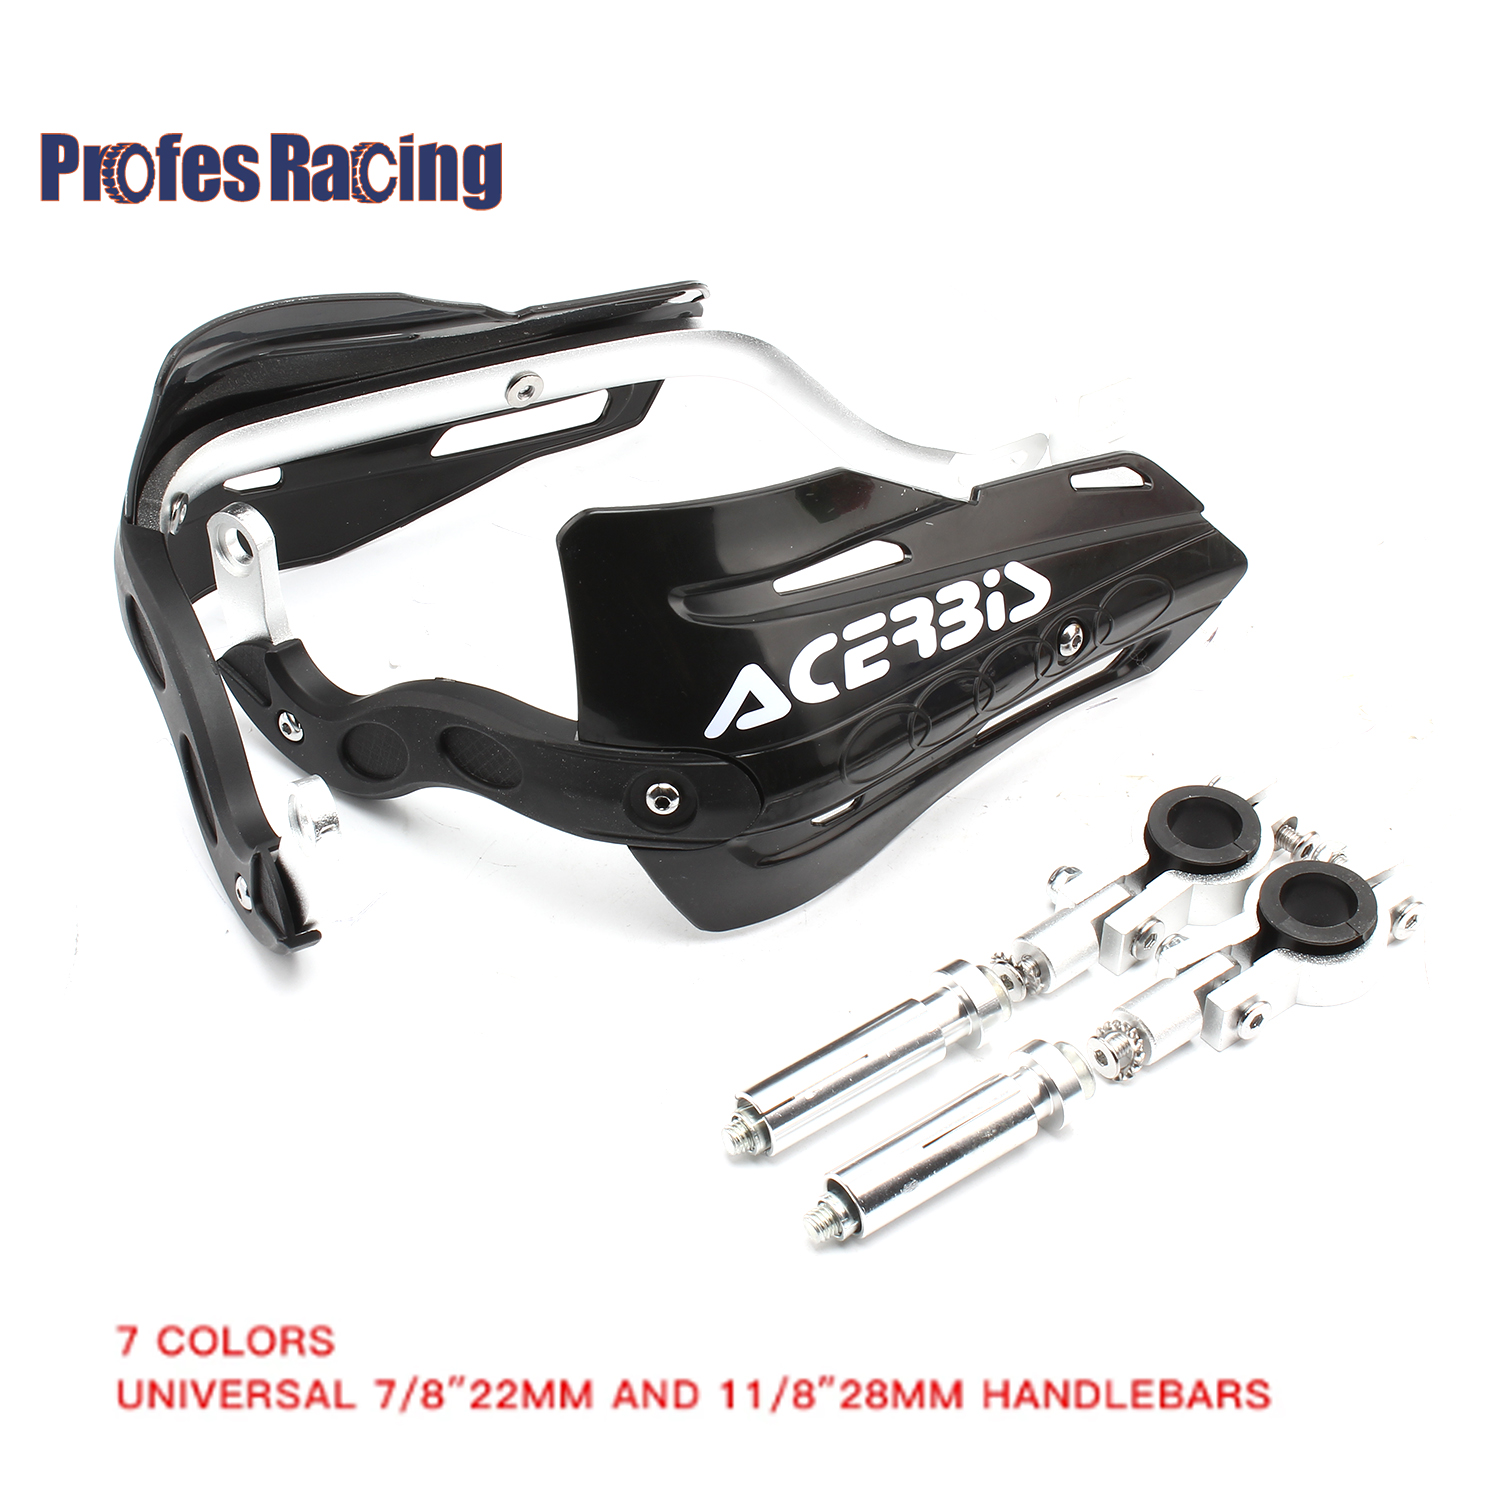 Motorcycle 22MM 28MM Handlebar Hand Guards Handguard Protector For KTM EXC EXCF SX SXF XC XCF XCW XCFW 125 250 350 450 530